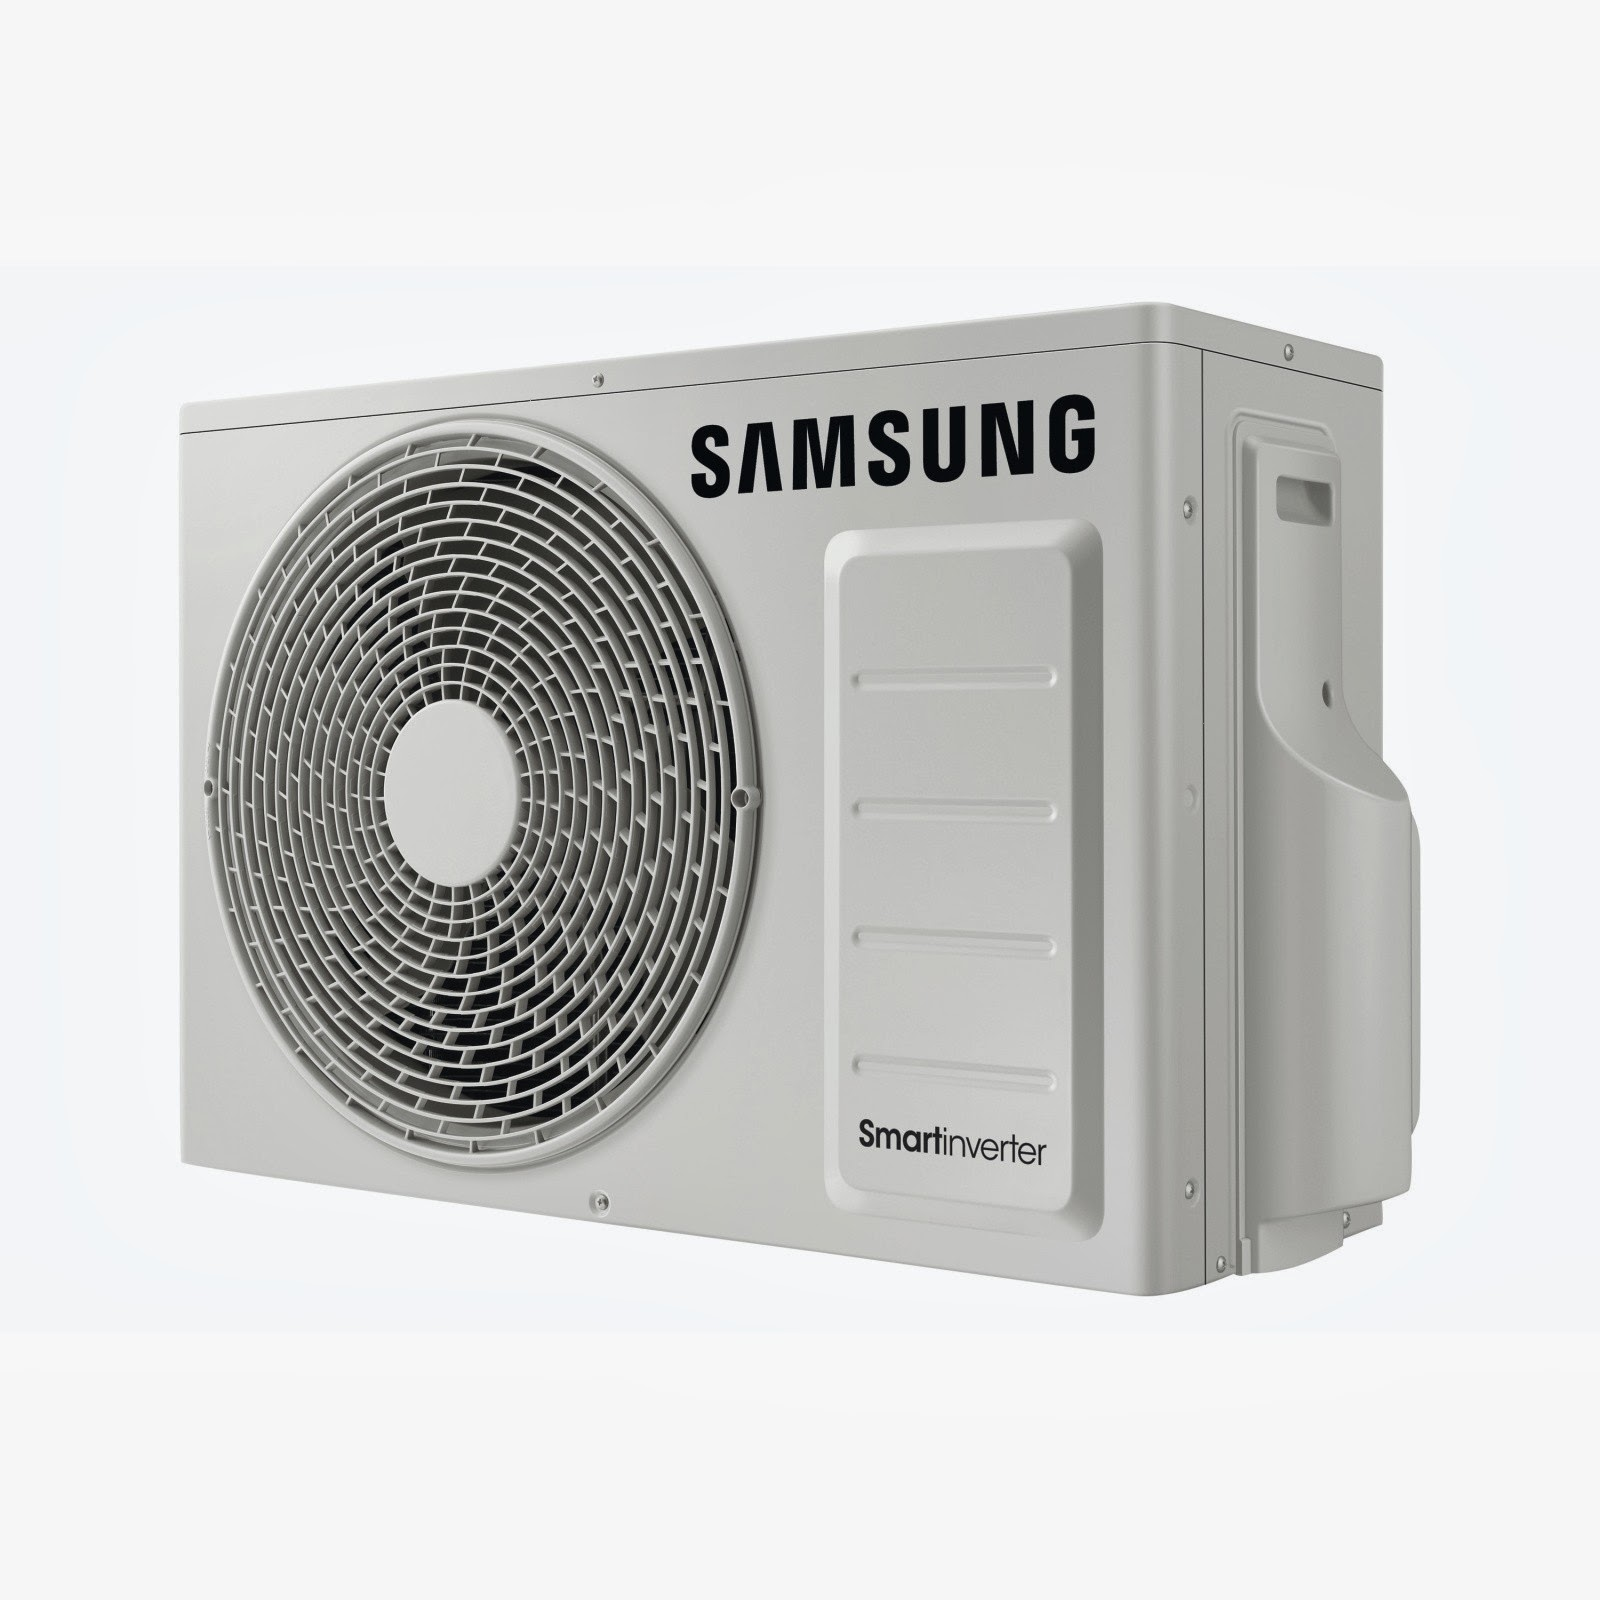 Samsung Air Conditioning Q9000 Floor Console Inverter Heatpump 7 kW  #545650